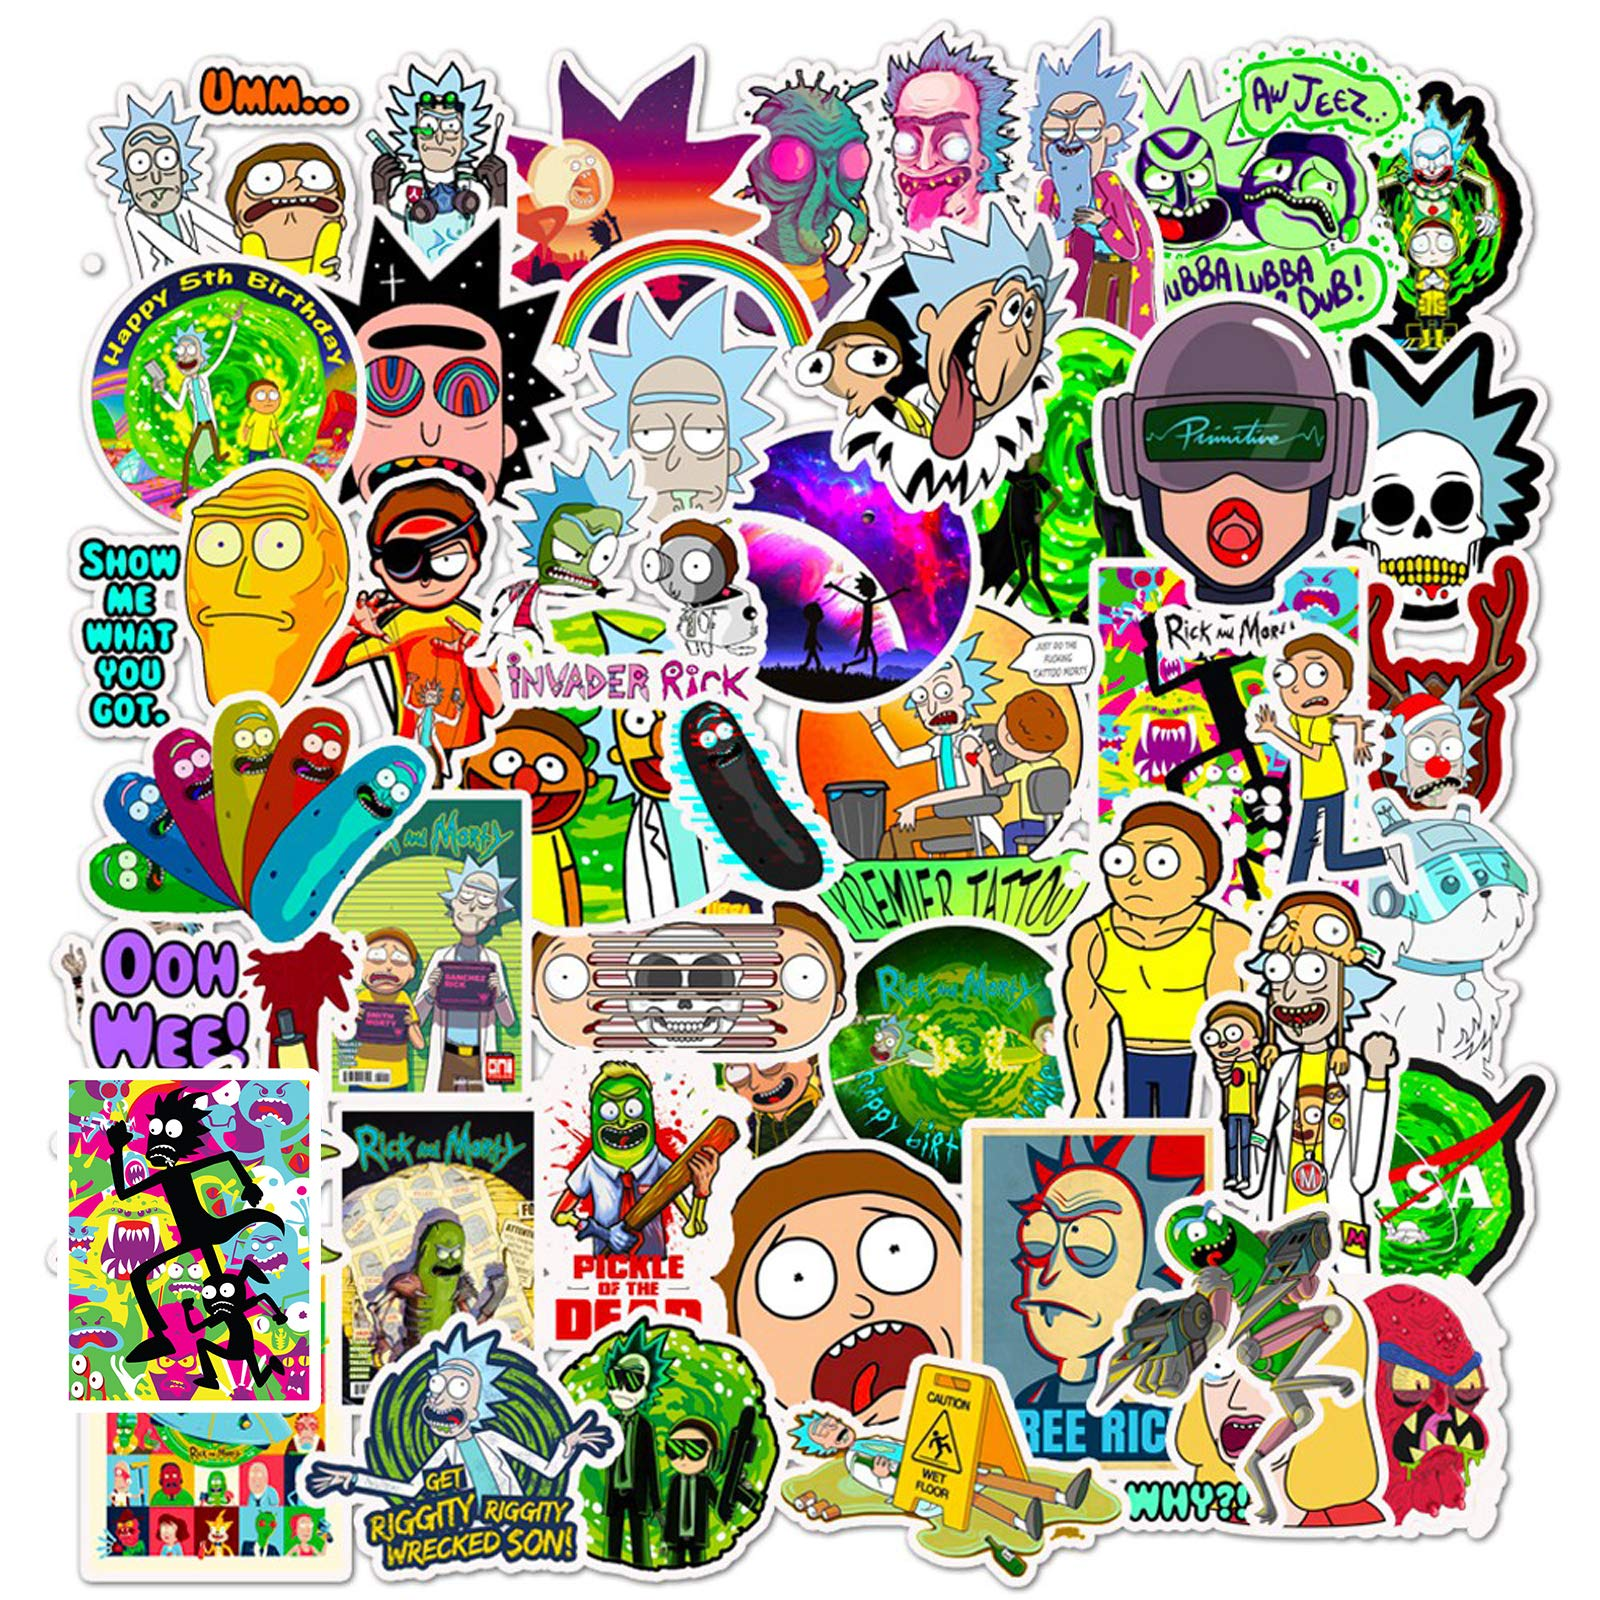 Anime Cartoon Stickers for Hydro Flask, | 50 PCS | Vinyl Waterproof Stickers for Laptop,Skateboard,Water Bottles,Computer,Phone, Cute Anime Stickers (Anime-50)